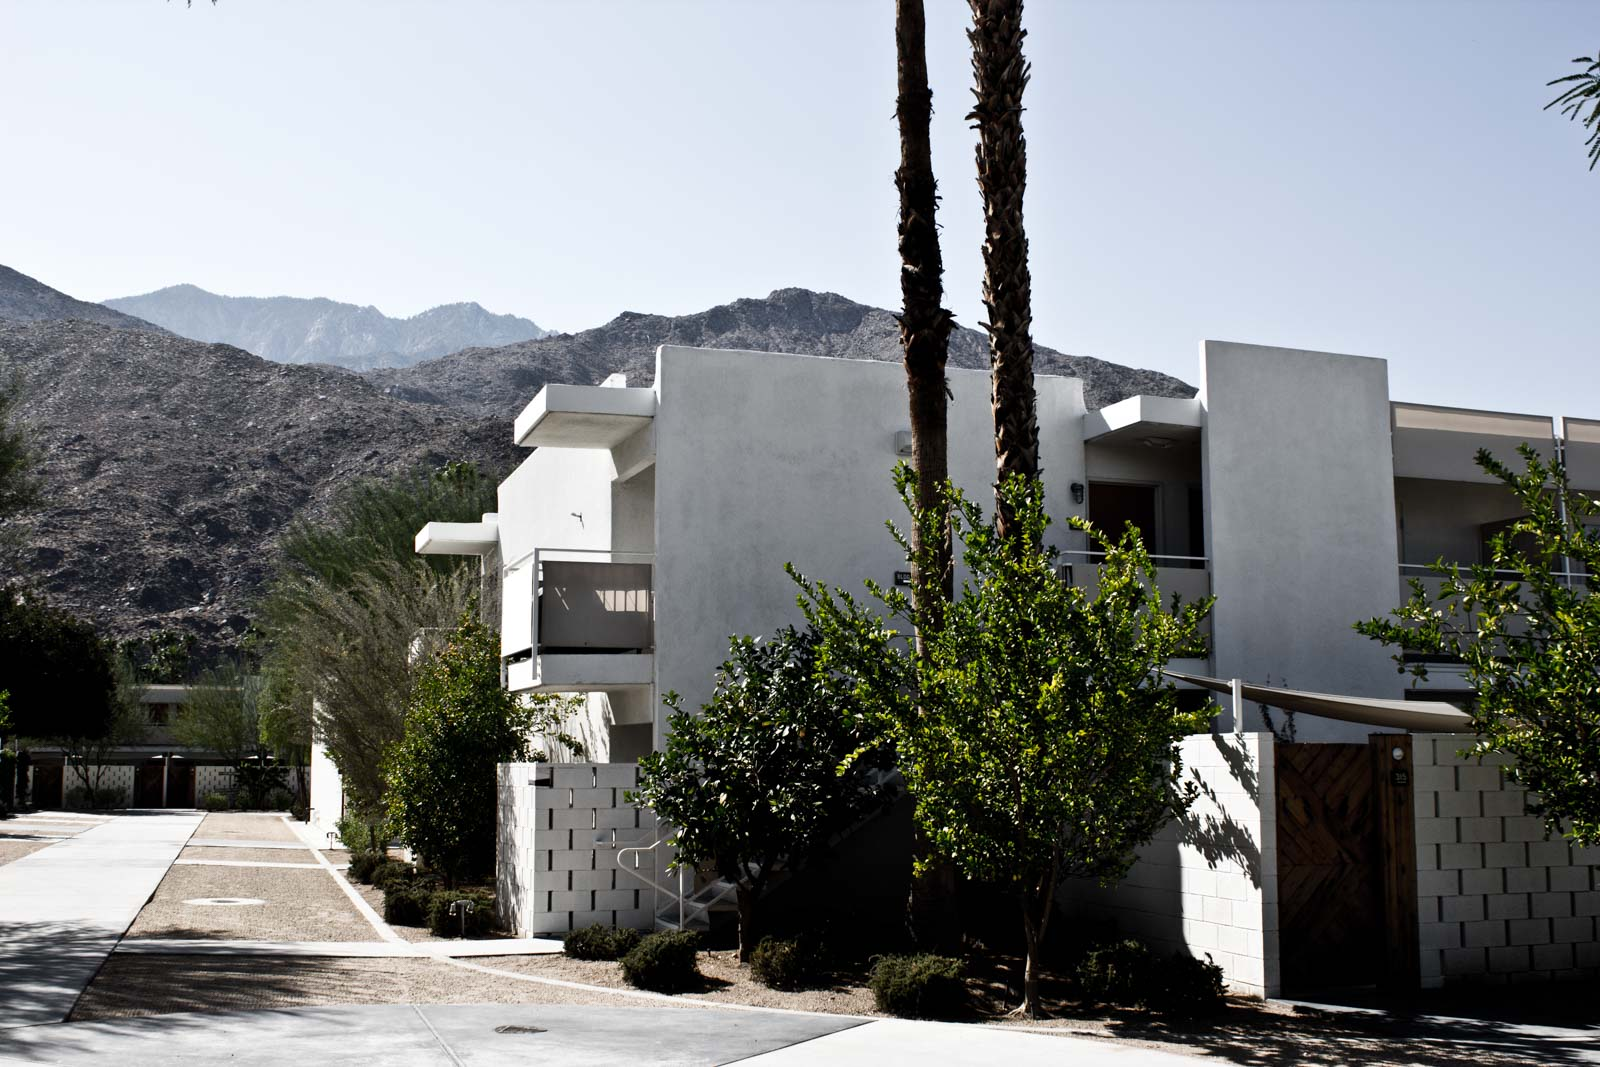 The Ace Hotel in Palm Springs, California, USA